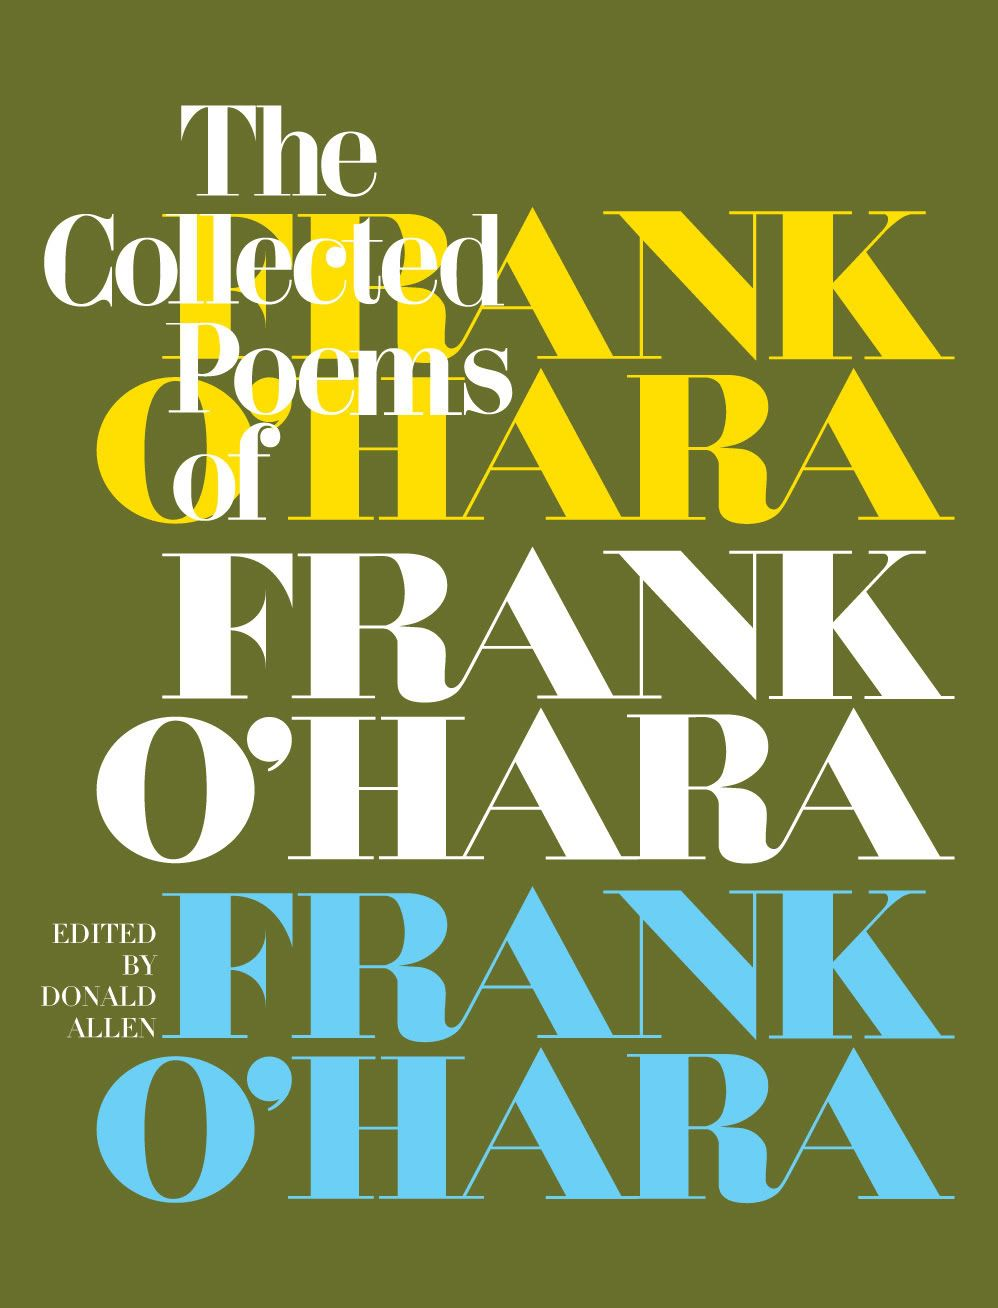 The Collected Poems Of Frank Ohara Book Cover Design